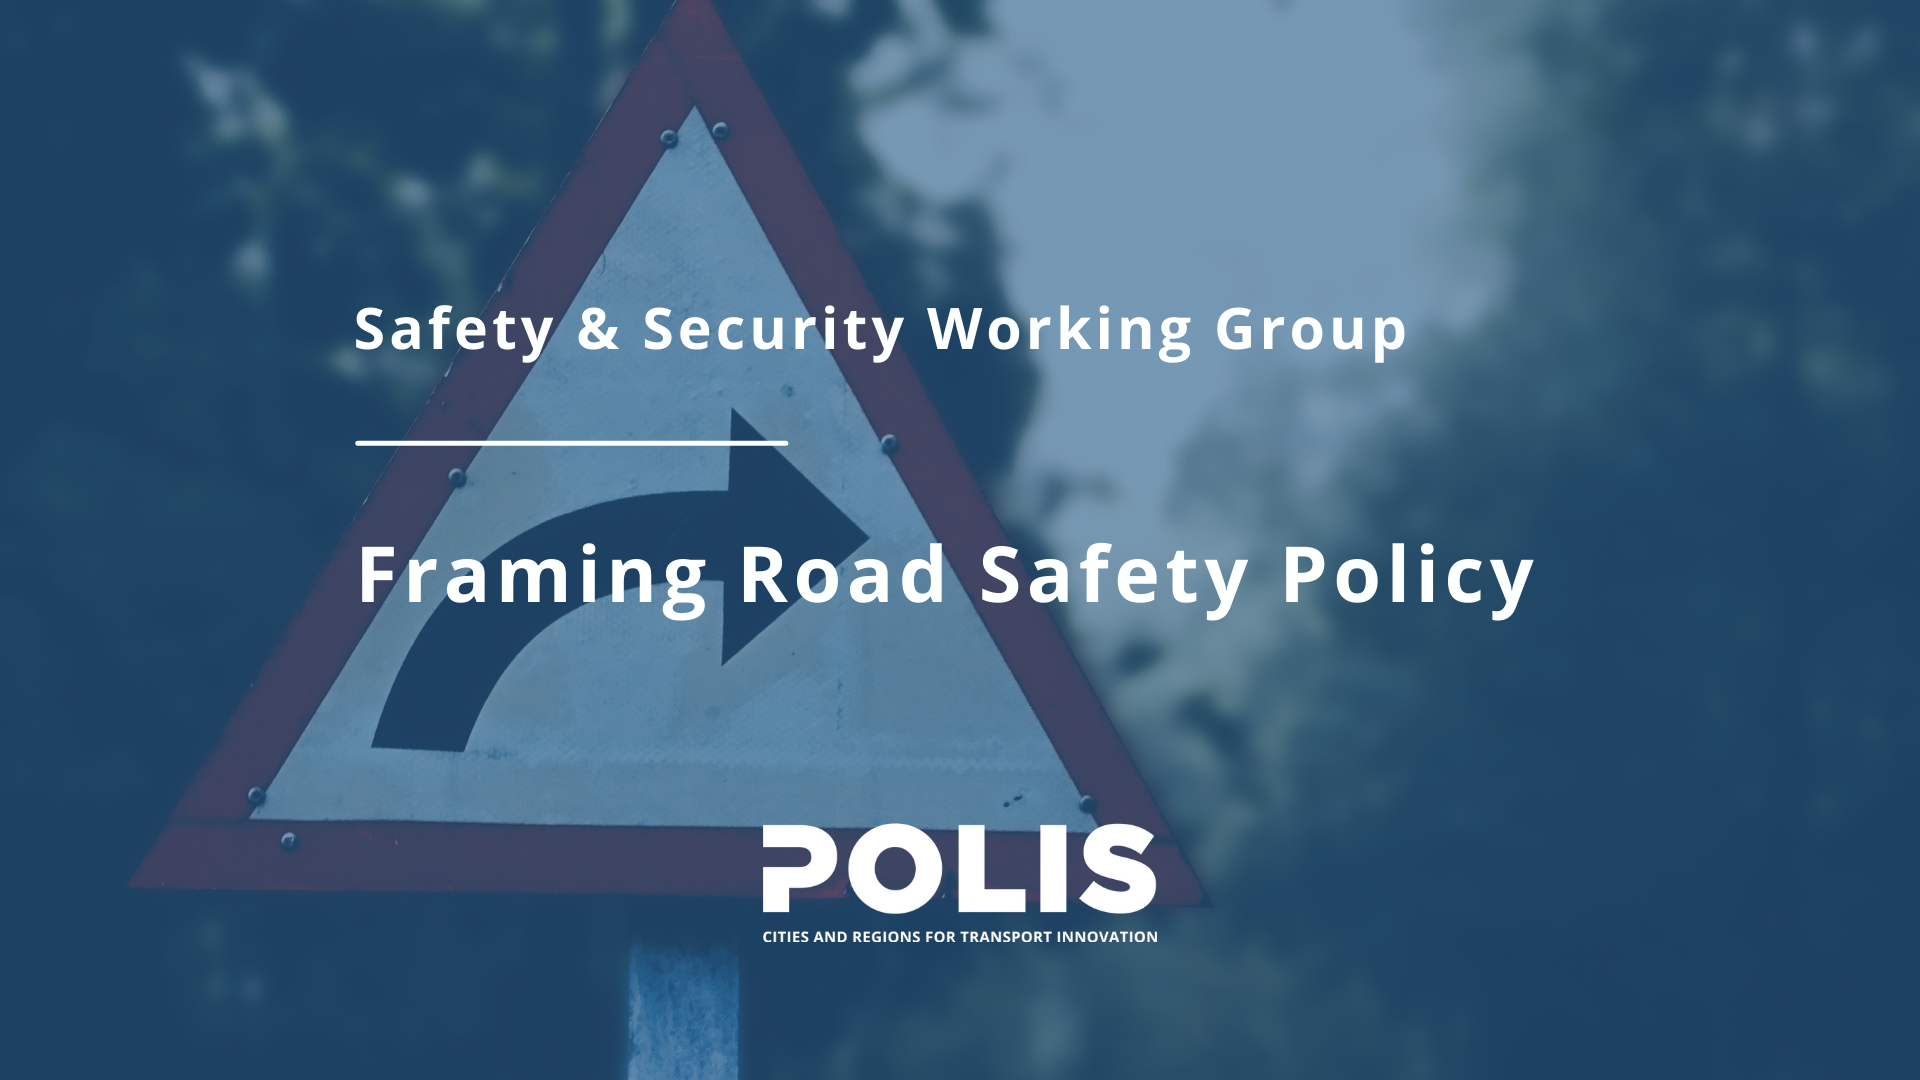 Safety & Security Working Group: Framing Road Safety Policy